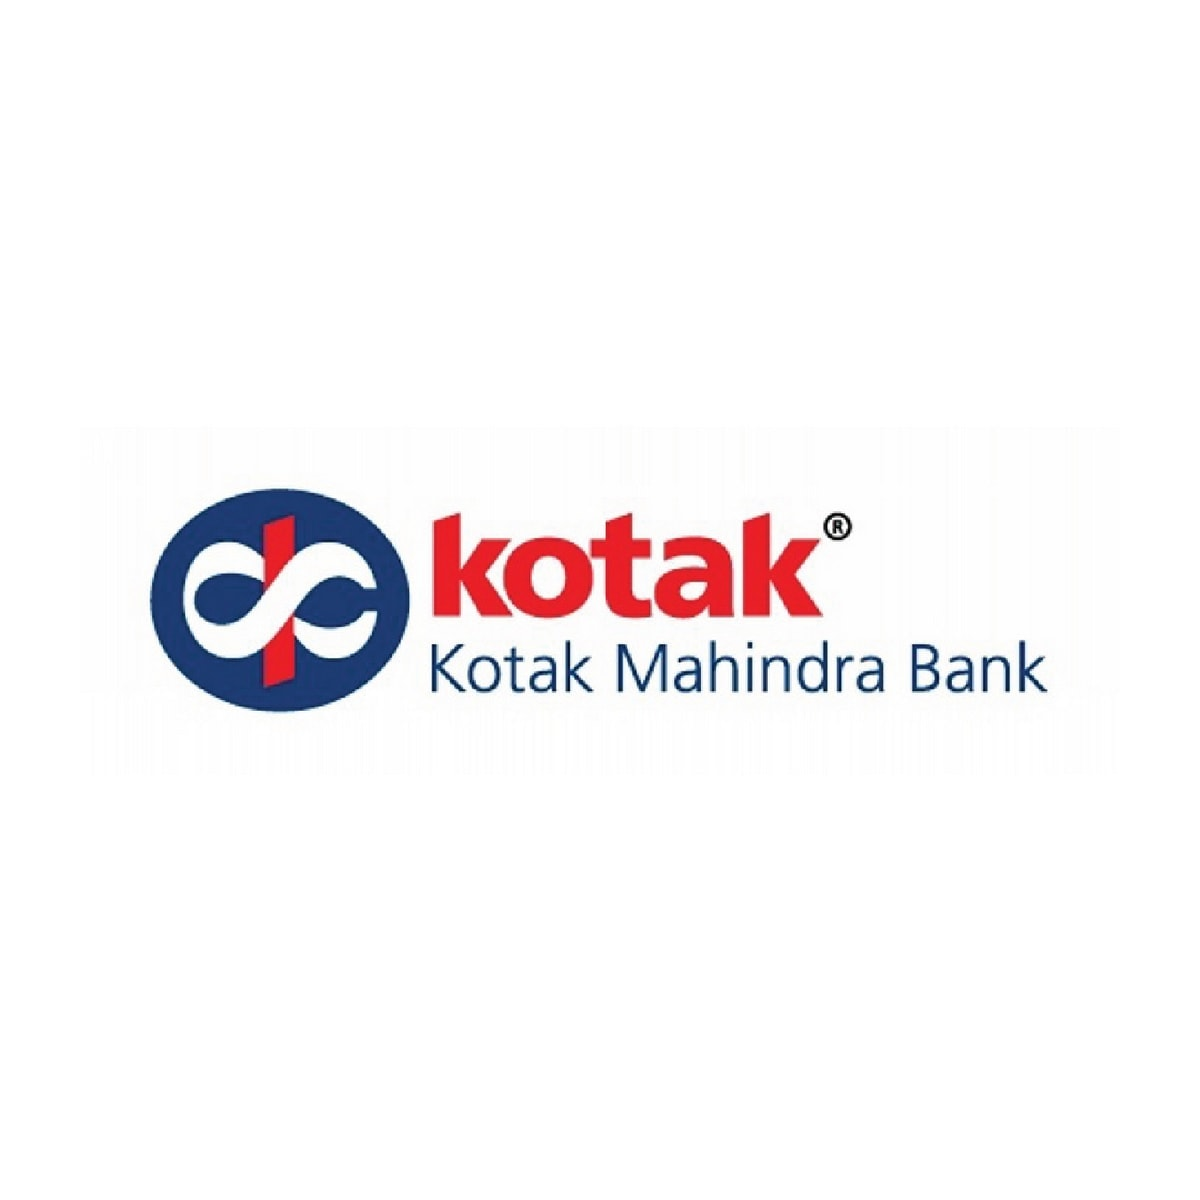 Marketing Mix Of Kotak Mahindra Bank – Kotak Mahindra Bank Marketing Mix